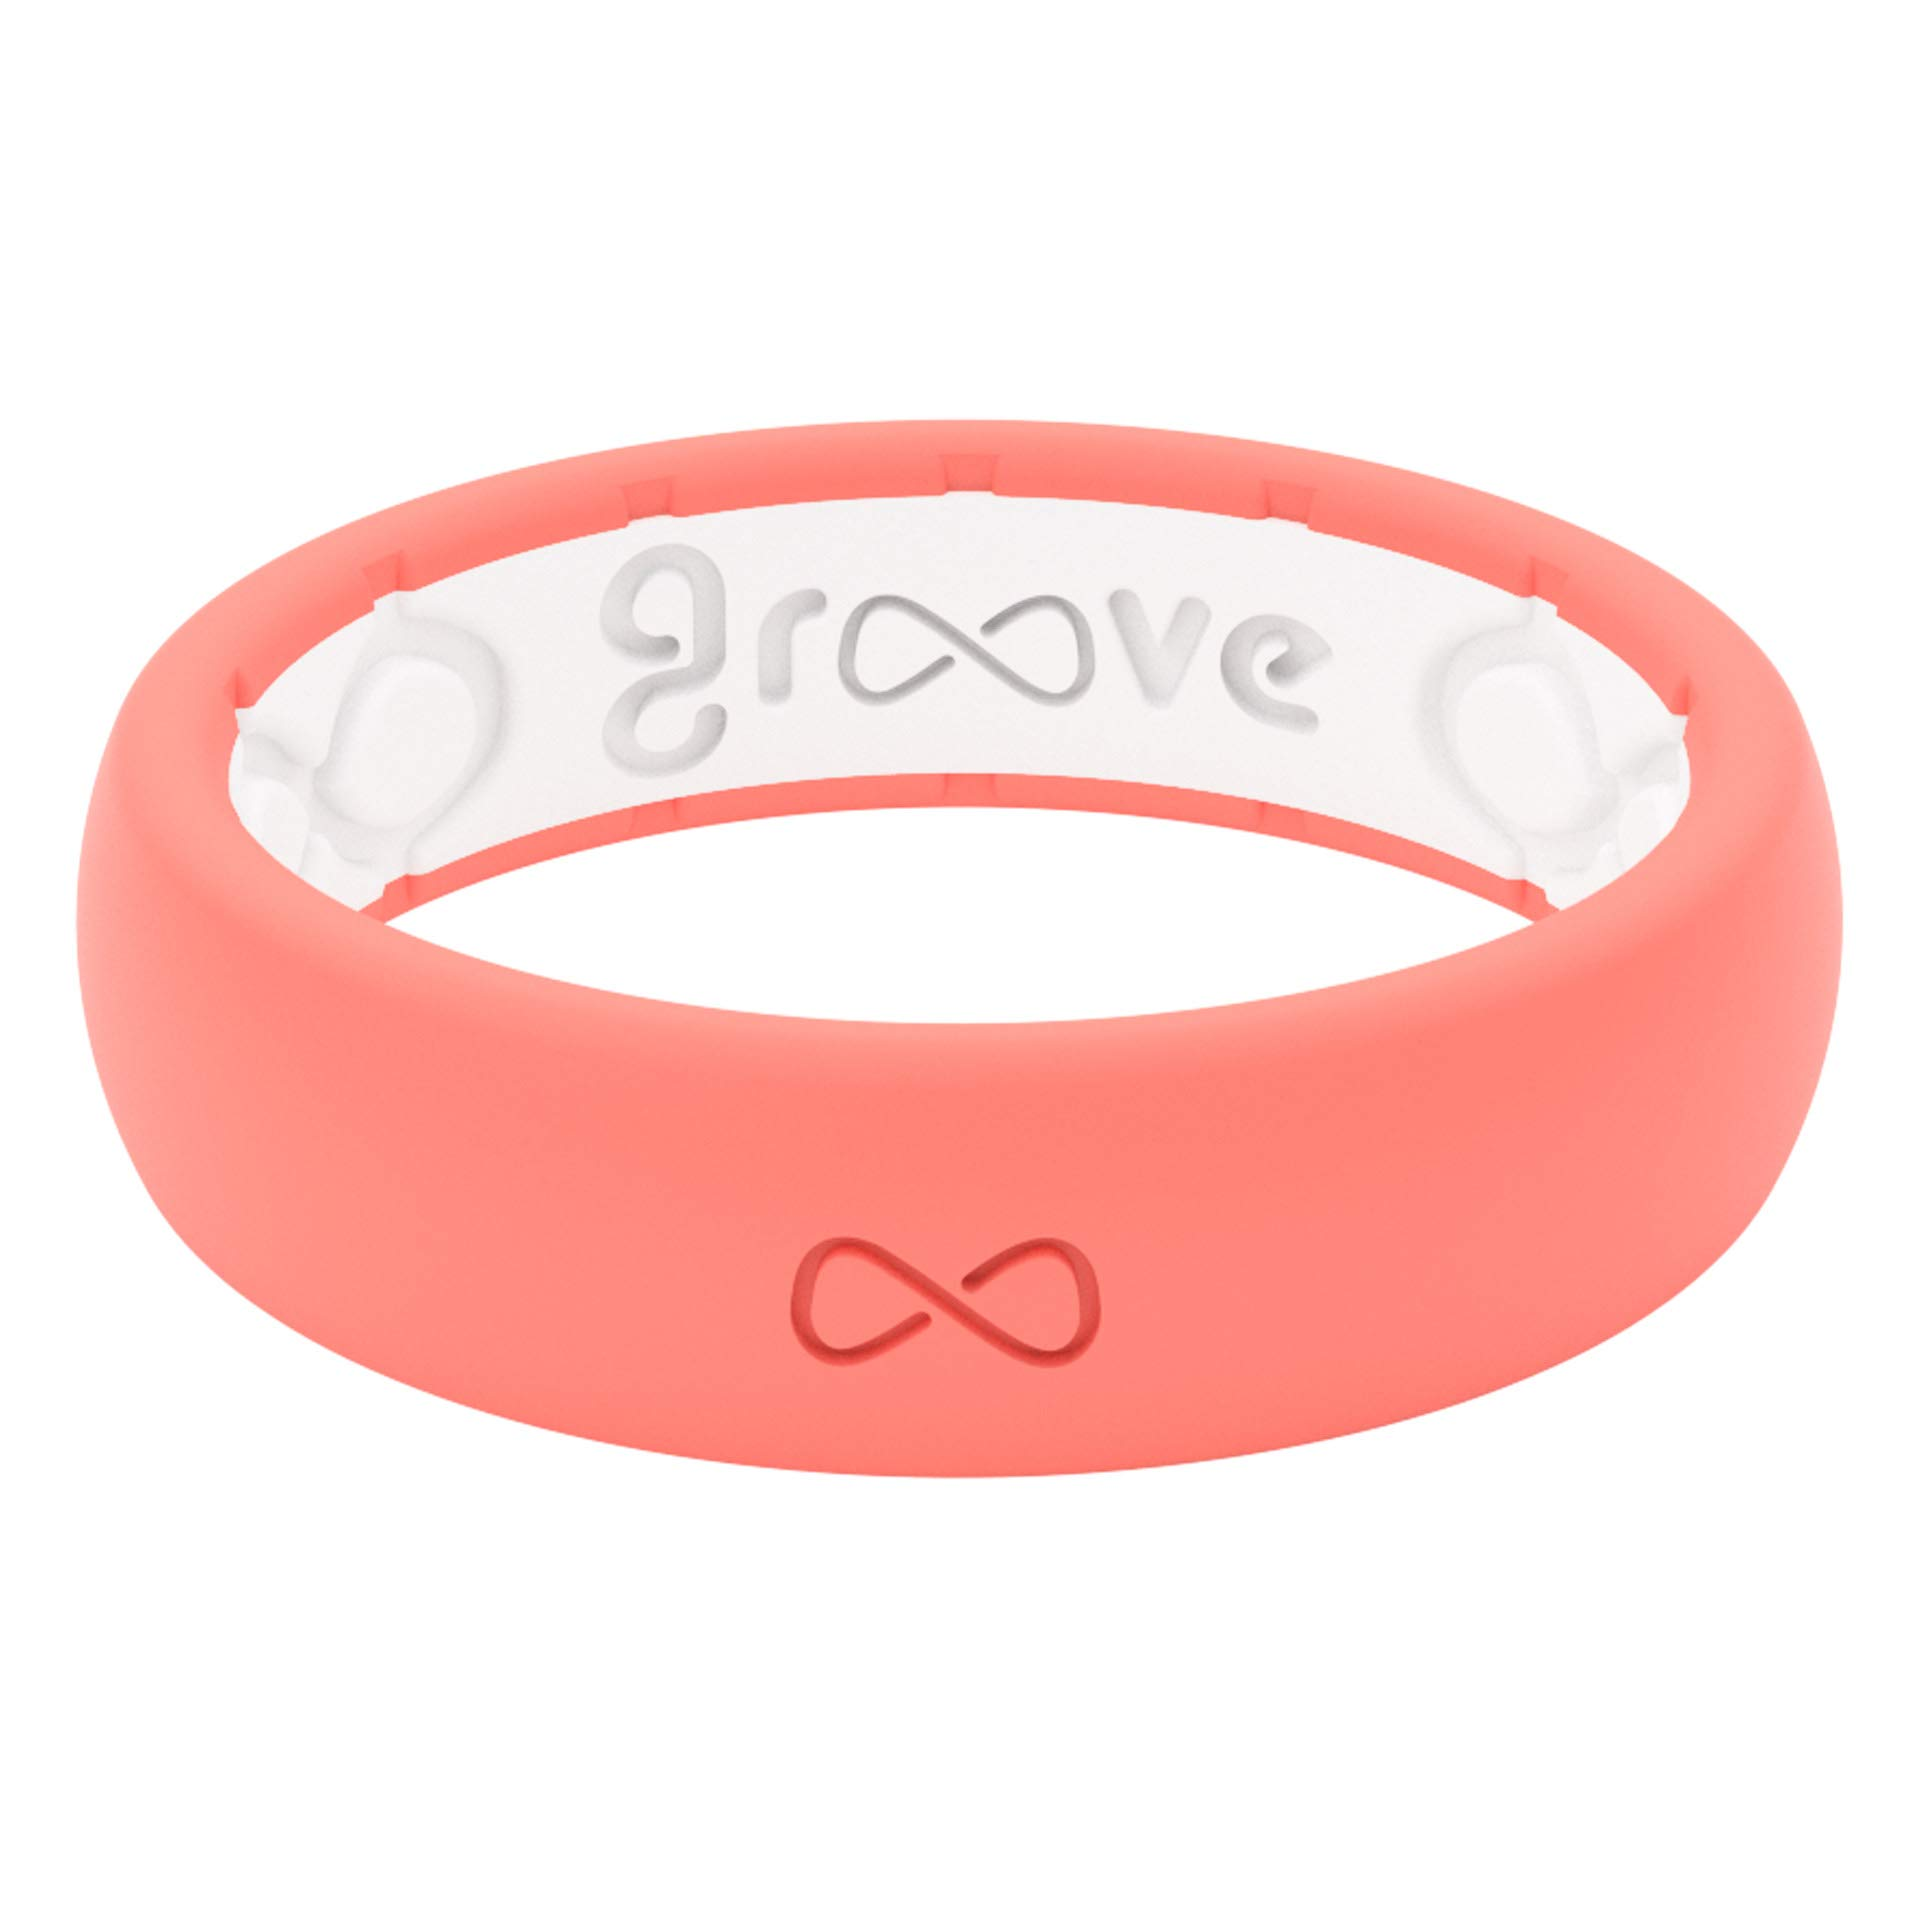 Groove Life - Silicone Ring for Men and for Women Wedding or Engagement Functional Rubber Band with, Breathable Grooves, Comfort Fit, and Durability - Thin Solid Coral Size 4